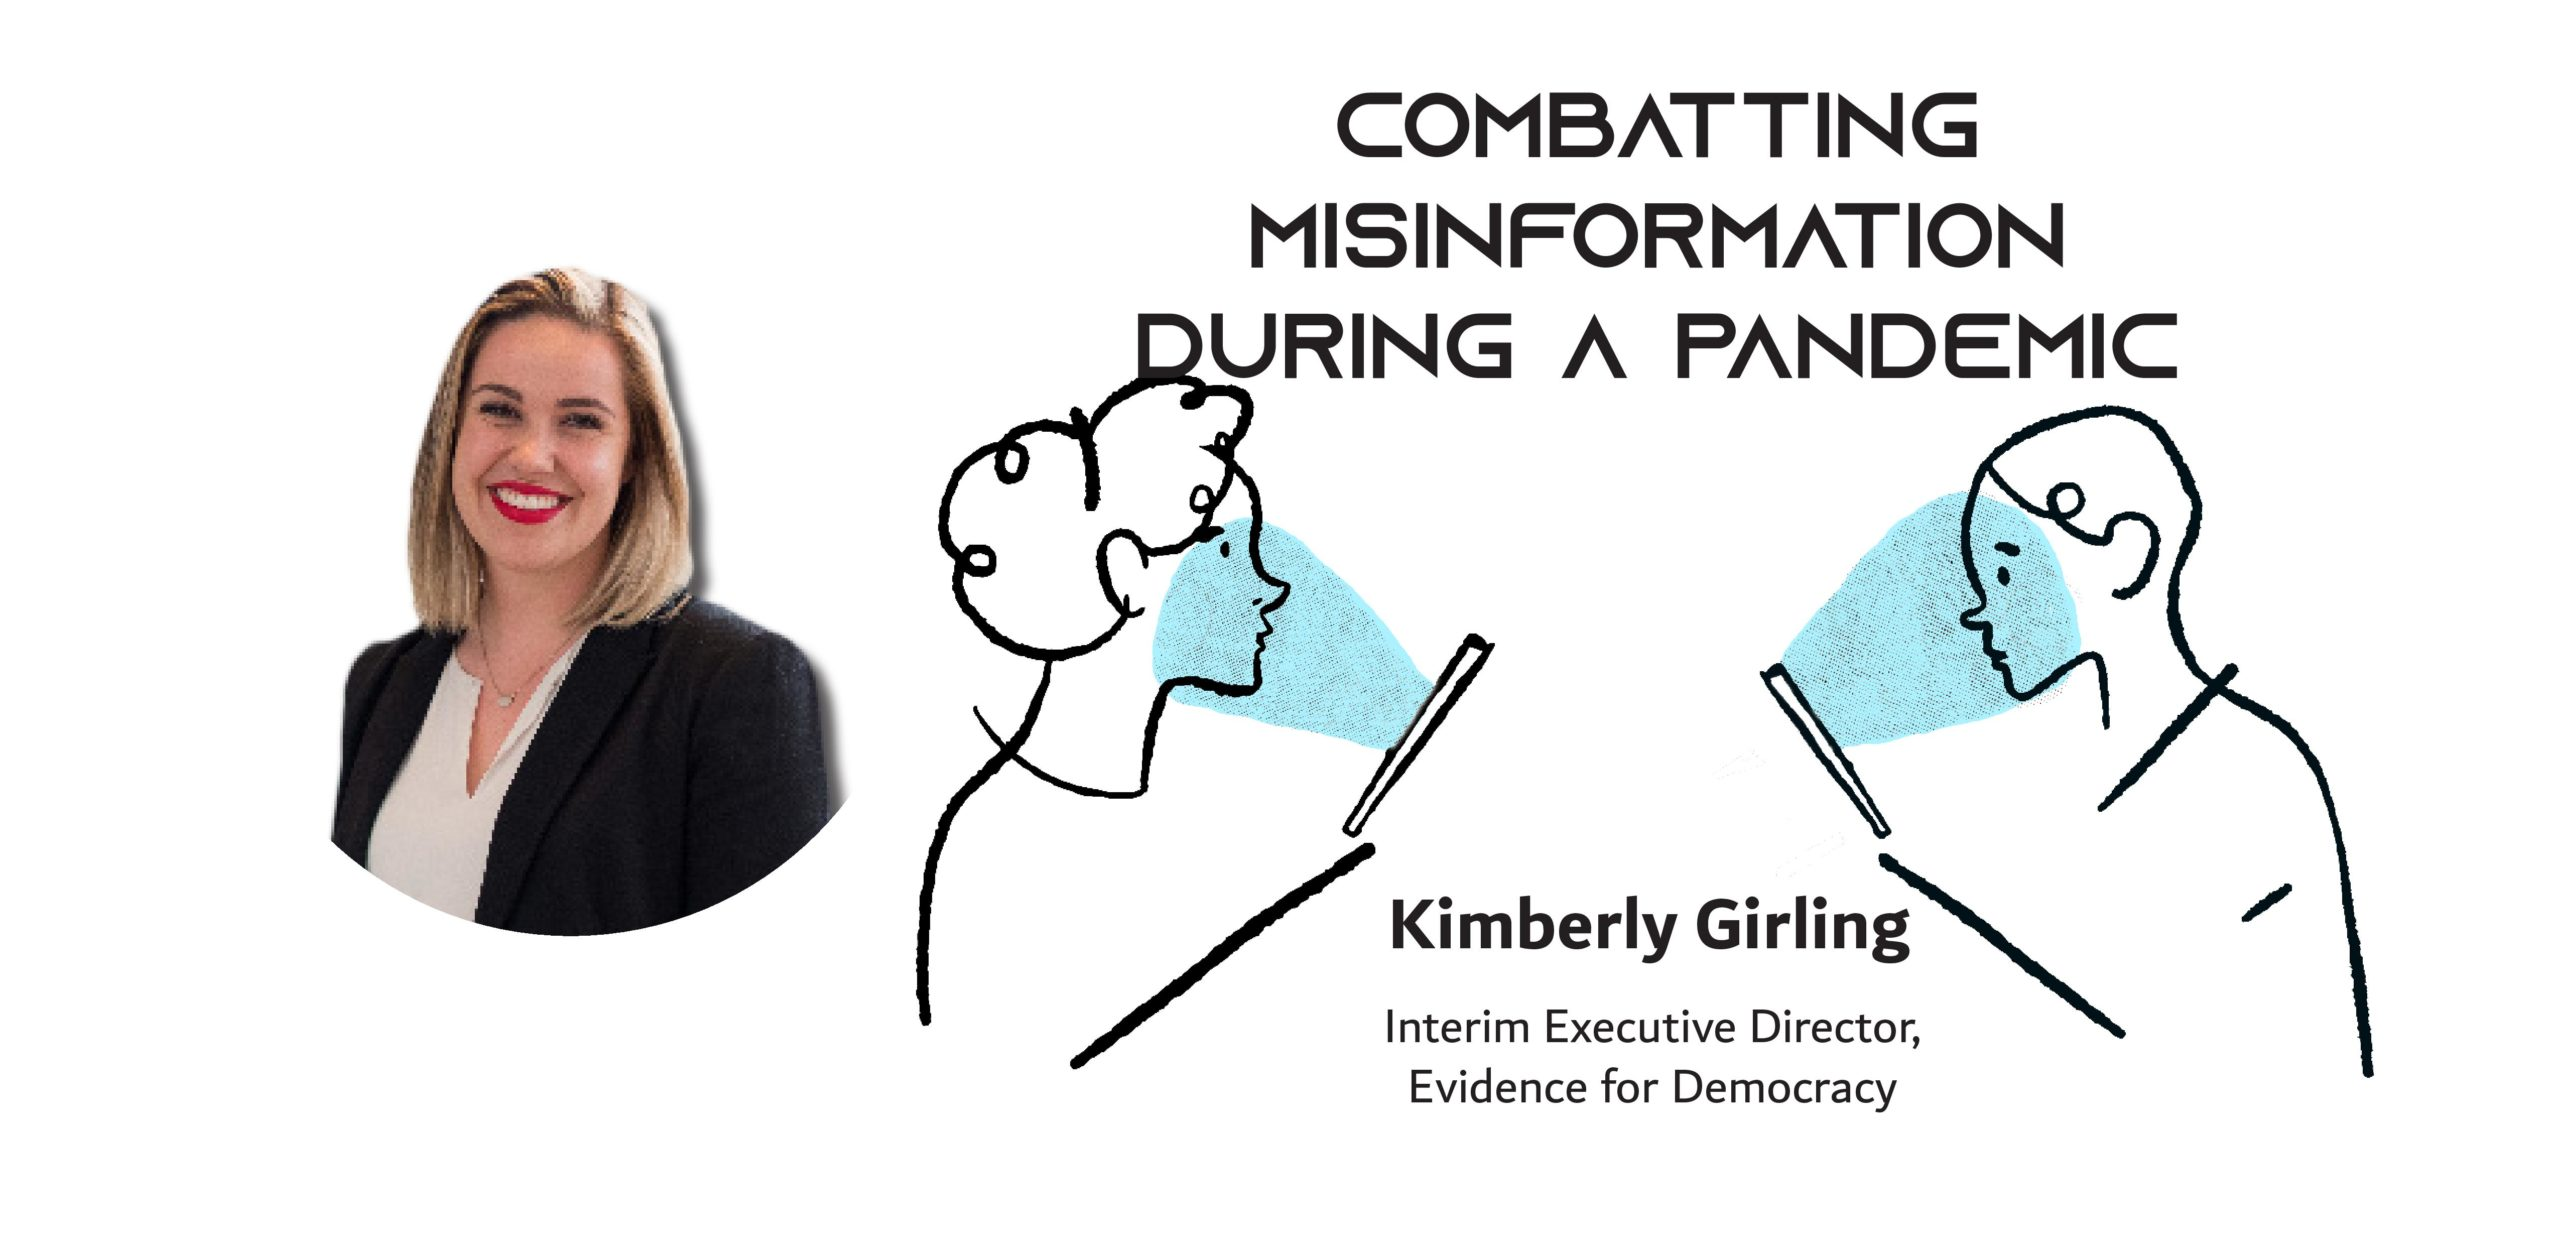 A picture of a woman next to a cartoon of two people looking at their phones wiht the text: Combatting Misinformation During a Pandemic Kimberly Girling Interim Executive Director, Evidence for Democracy